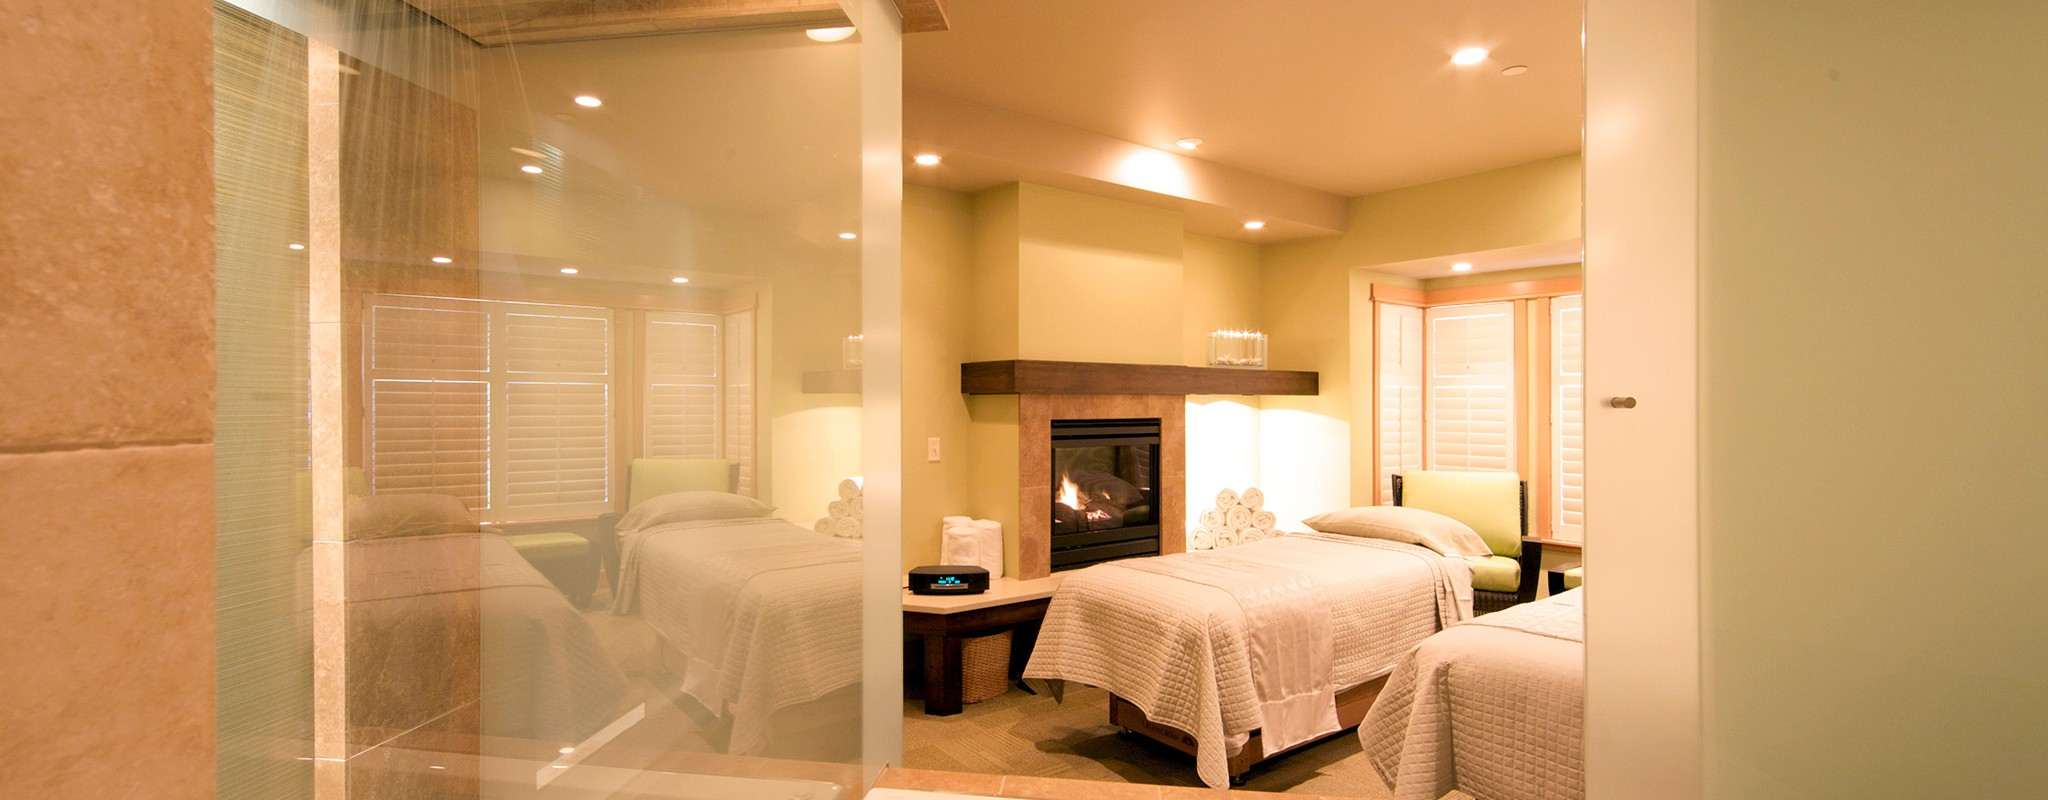 Cannon Beach Massage - Stephanie Inn